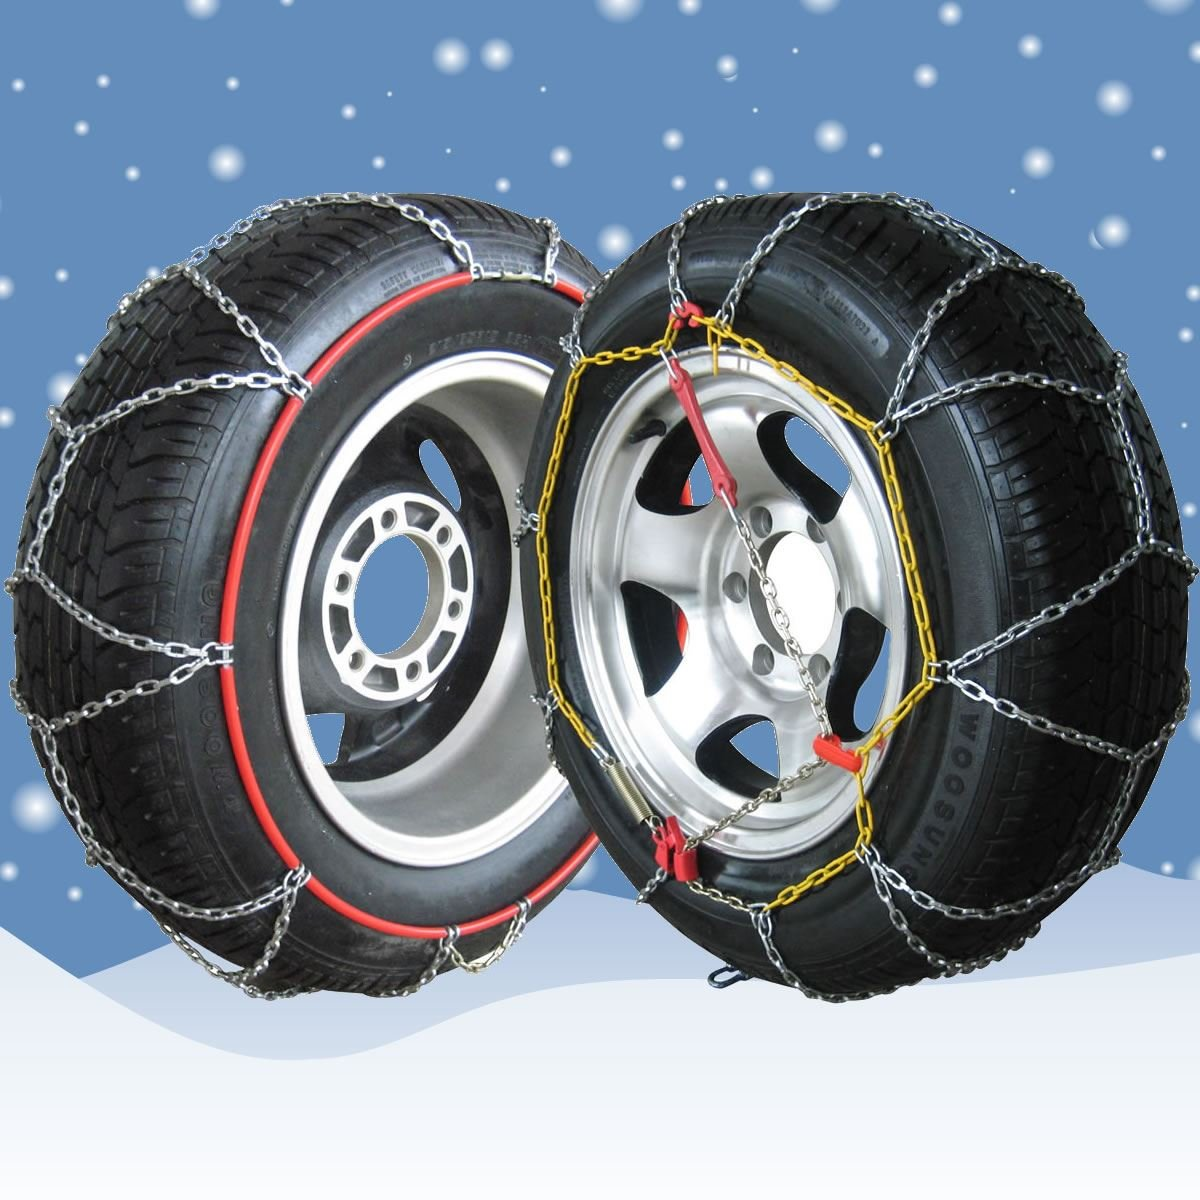 MP Essentials Sumex Husky Winter Professional 16mm 4WD Snow Chains for 20 Car Wheel Tyres 265//50 R20 Pair